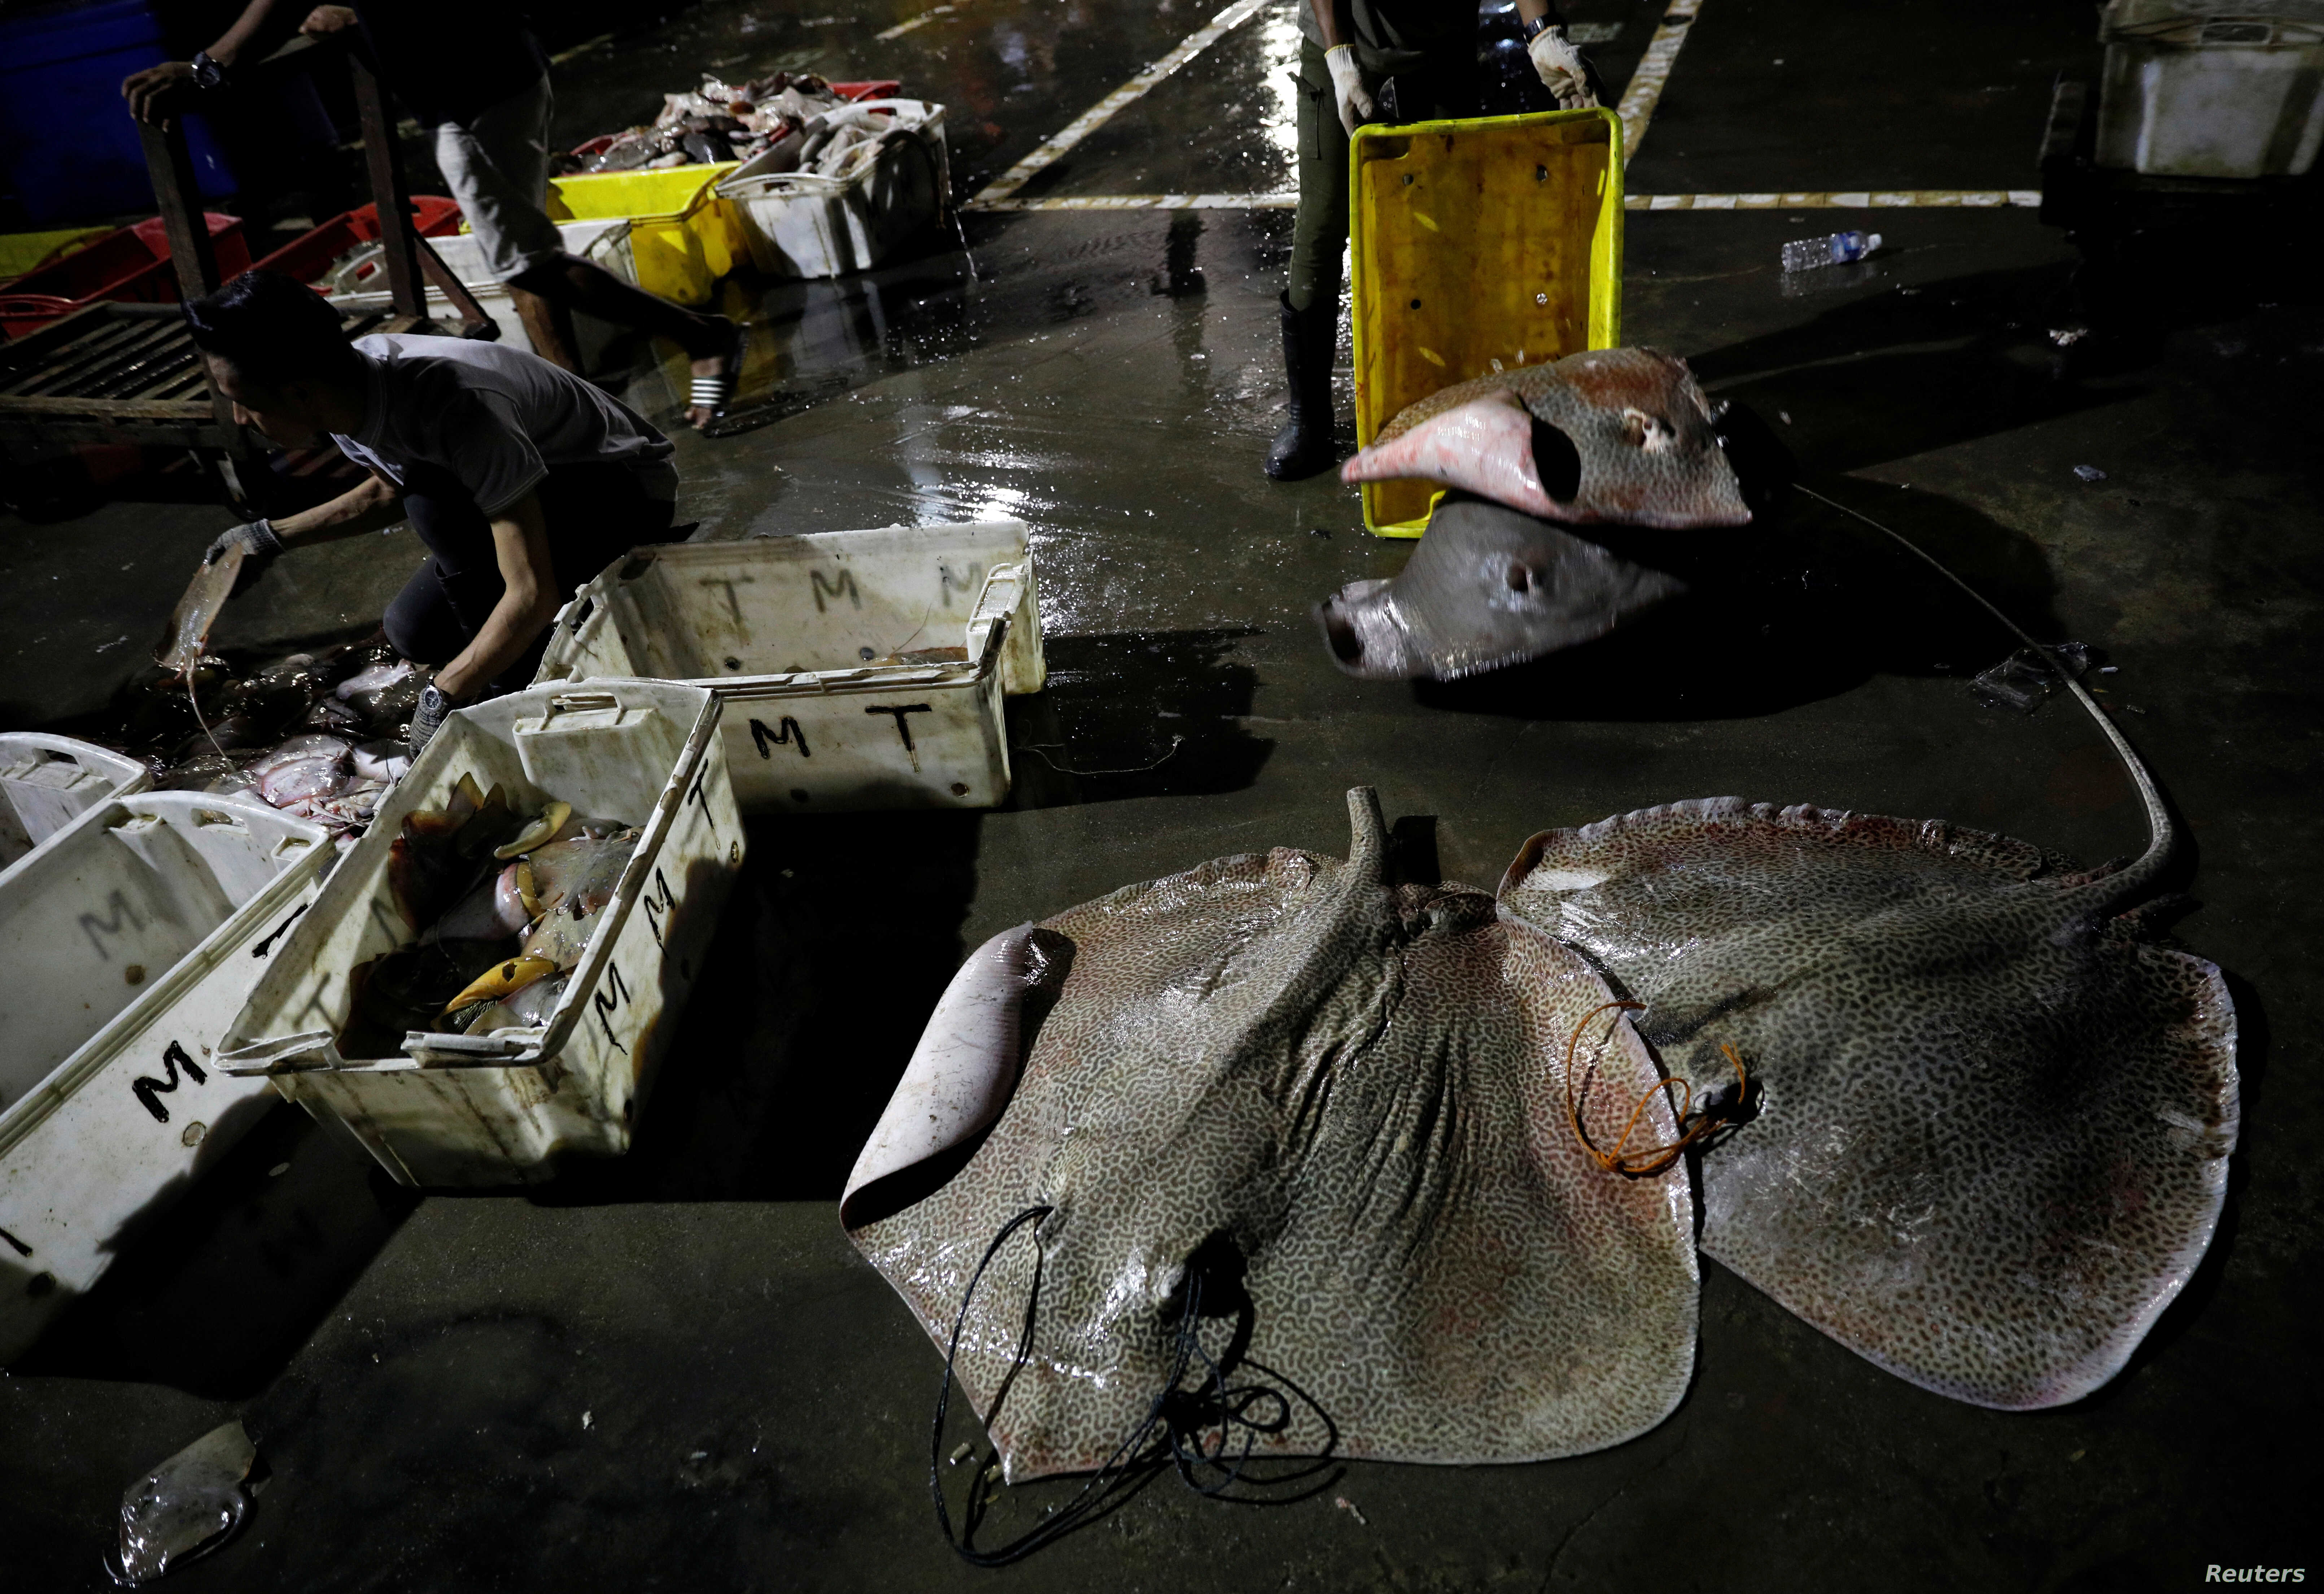 A man sorts stingrays landed by fishermen at a quay in Kota Kinabalu, Malaysia, July 5, 2018.